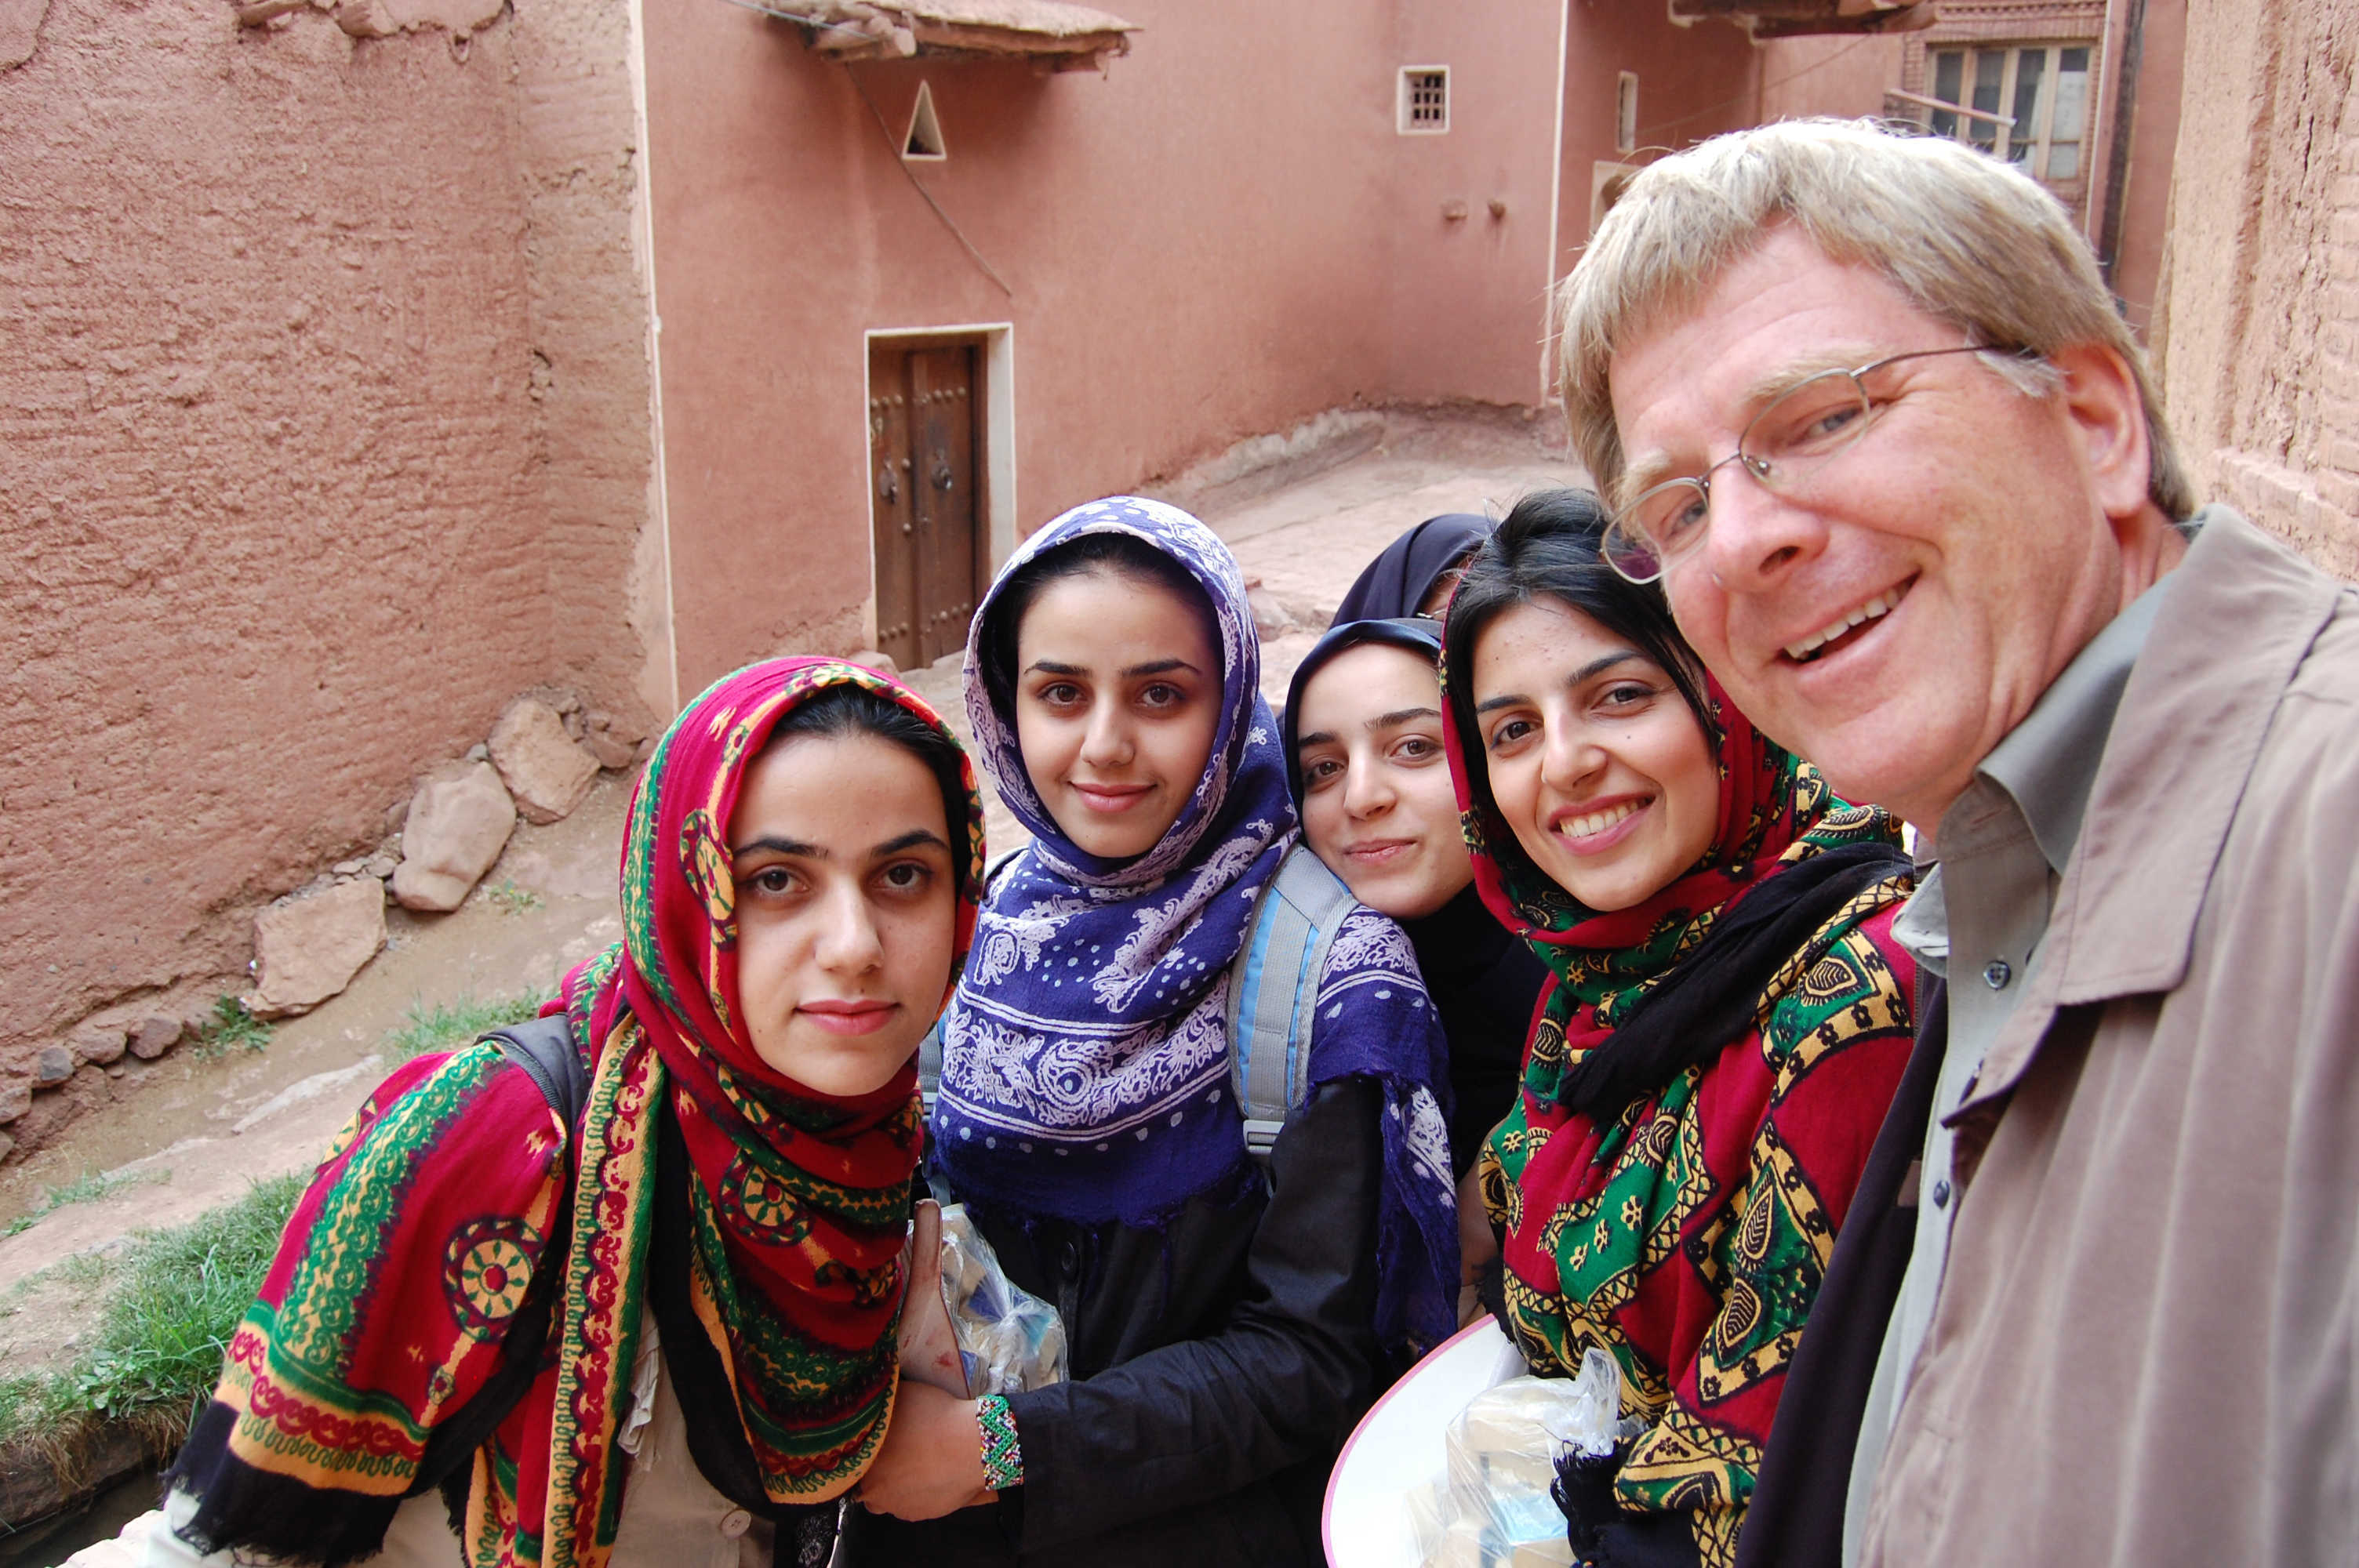 Village girls pose with Rick Steves in Iran